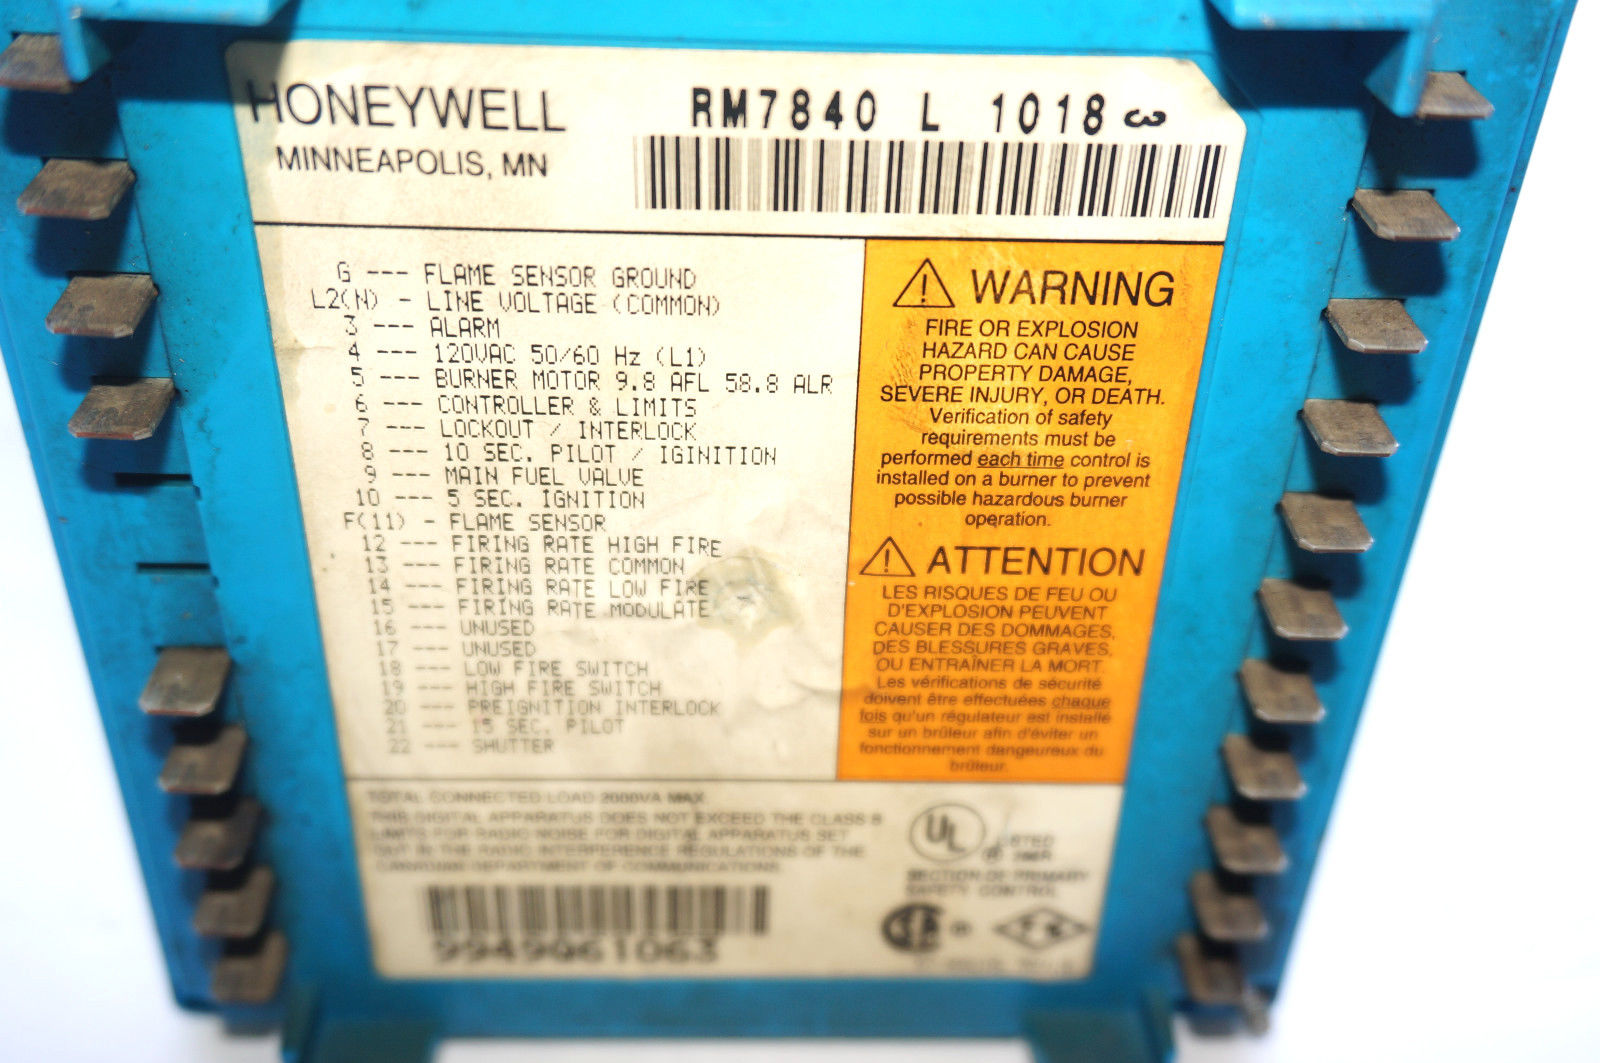 Honeywell Rm7840l1018 Wiring Diagram 36 Images Industrial Rm7840l 1018 Burner Control 351138670189 2 Sb Supply Mro Plc Equipment Parts